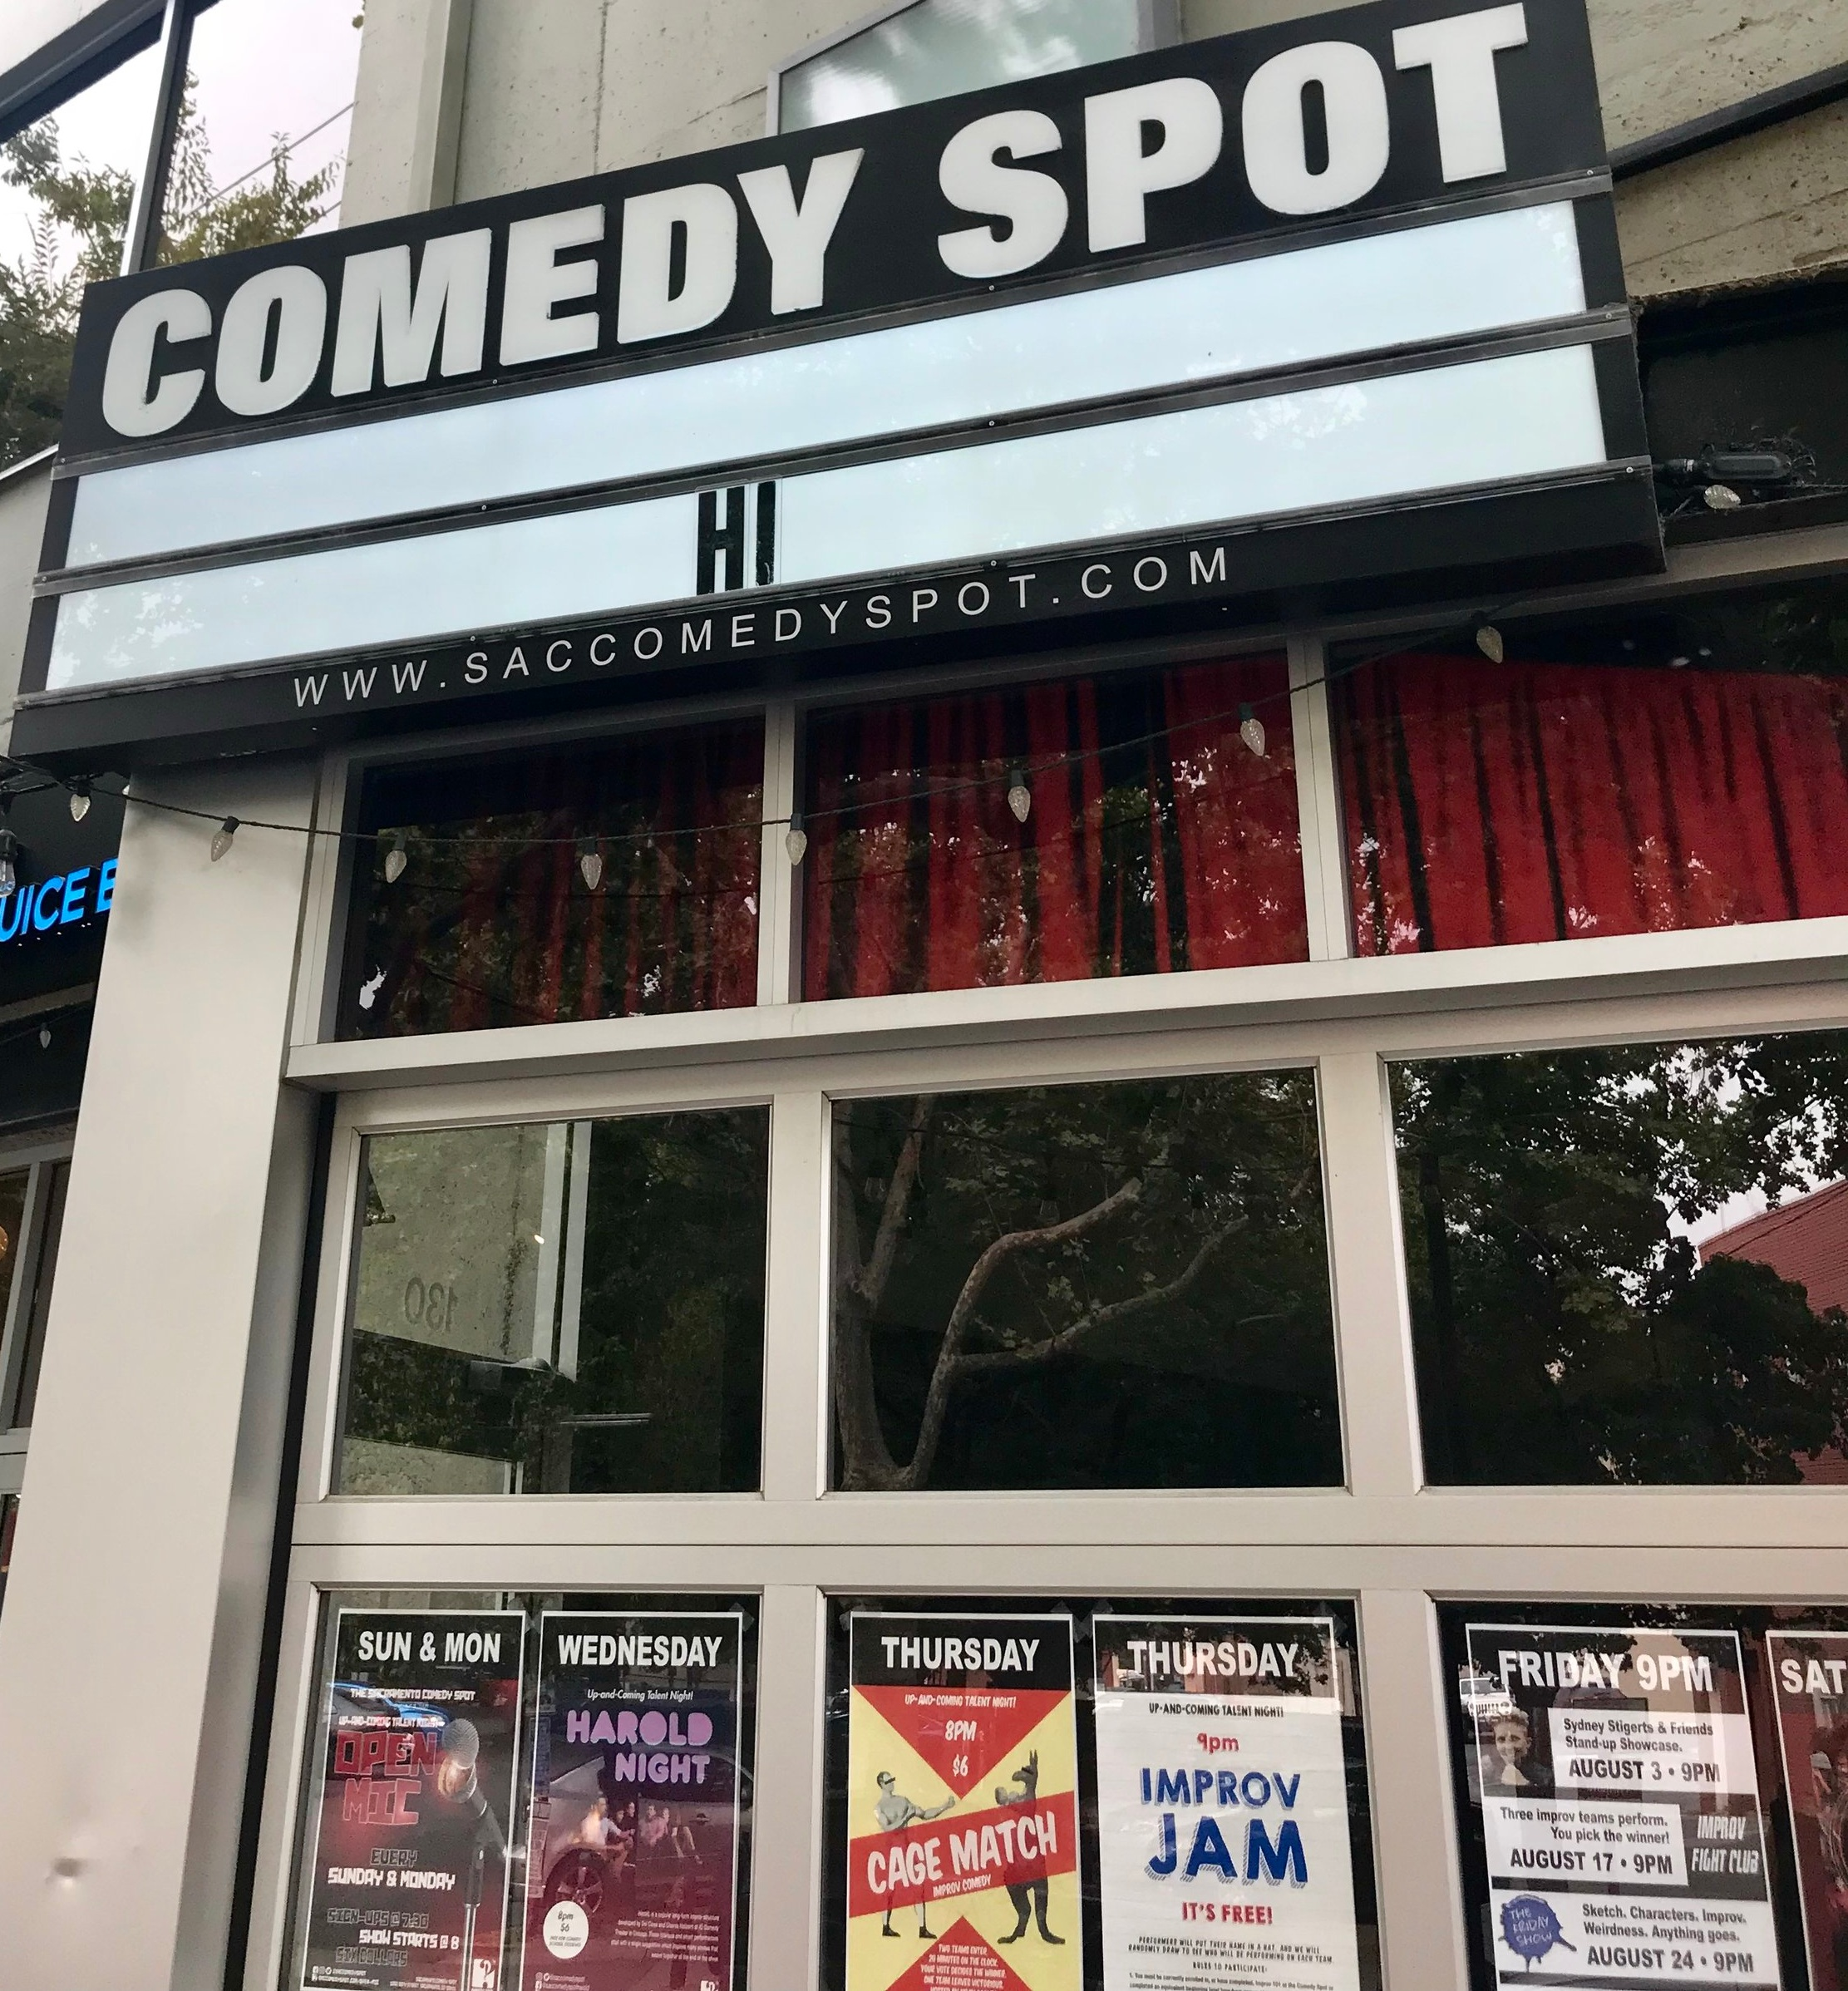 The Comedy Spot is located at 1050 20th Street, Suite 130 in Sacramento, CA!!